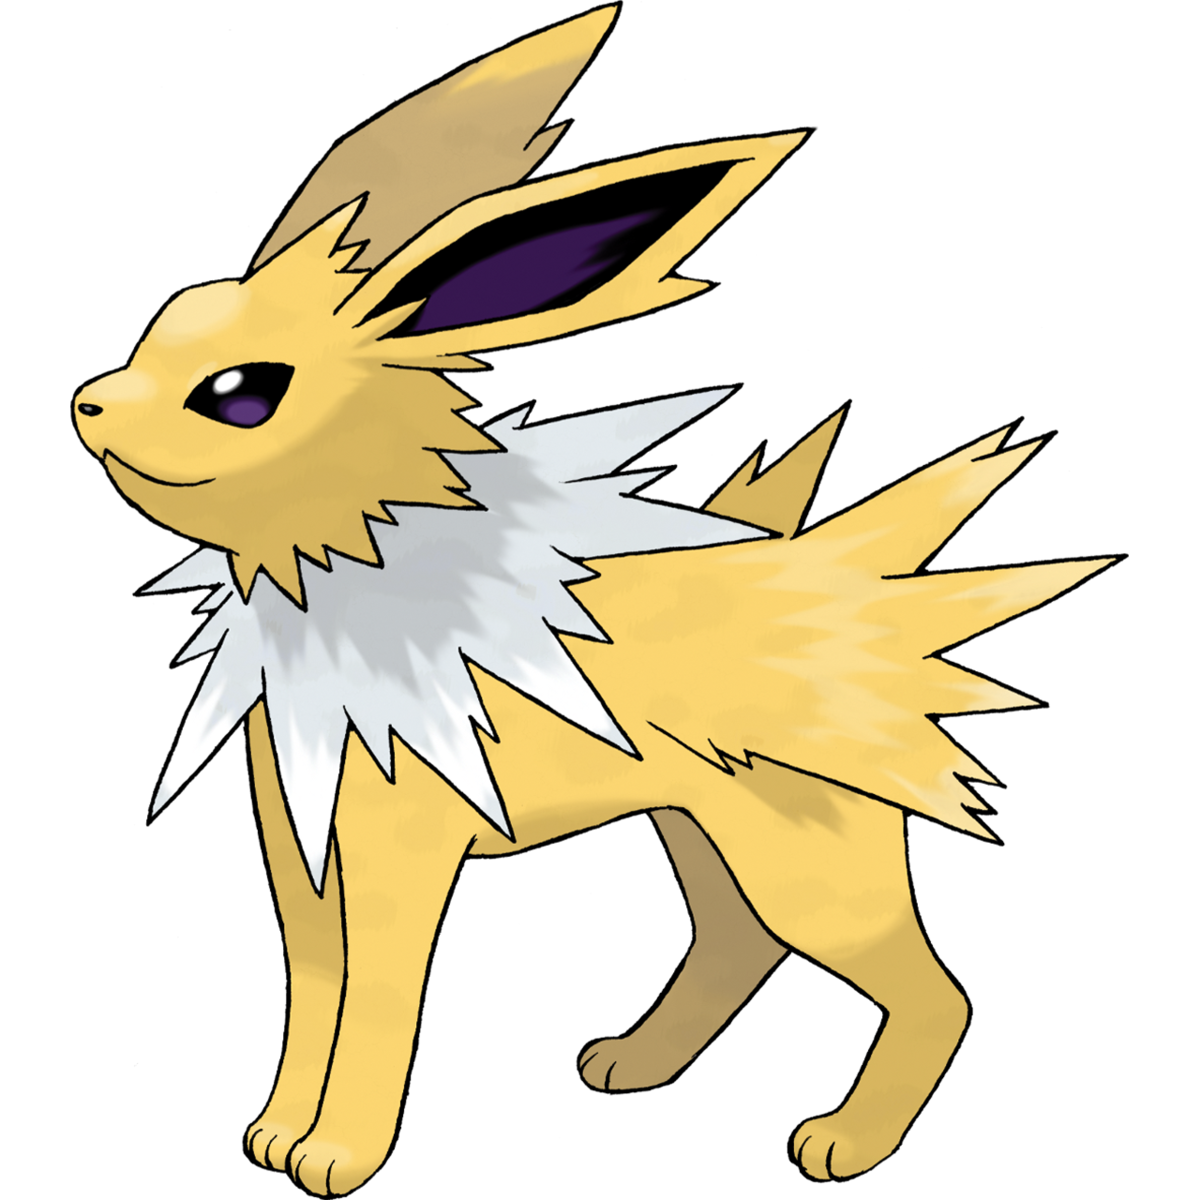 Jolteon (Pokémon).